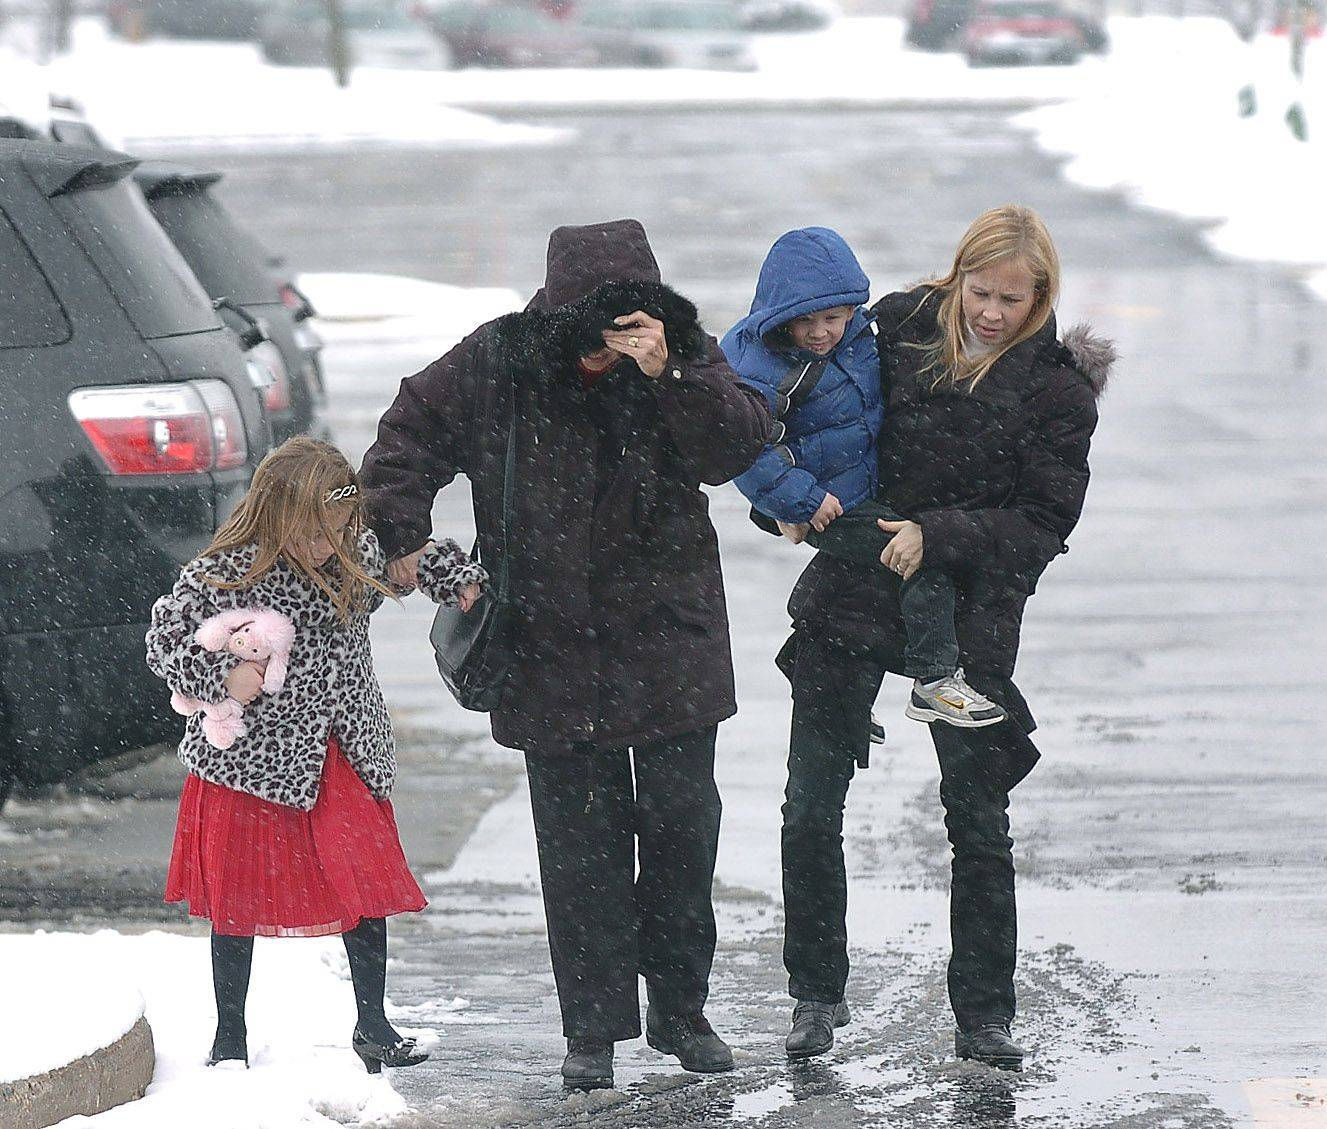 From left, Ashley Harrington, her grandma Pat Marshall, Danny Harrington and mom Jen Harrington make their way through the snowy parking lot on their way to Panera Bread for lunch in Vernon Hills.